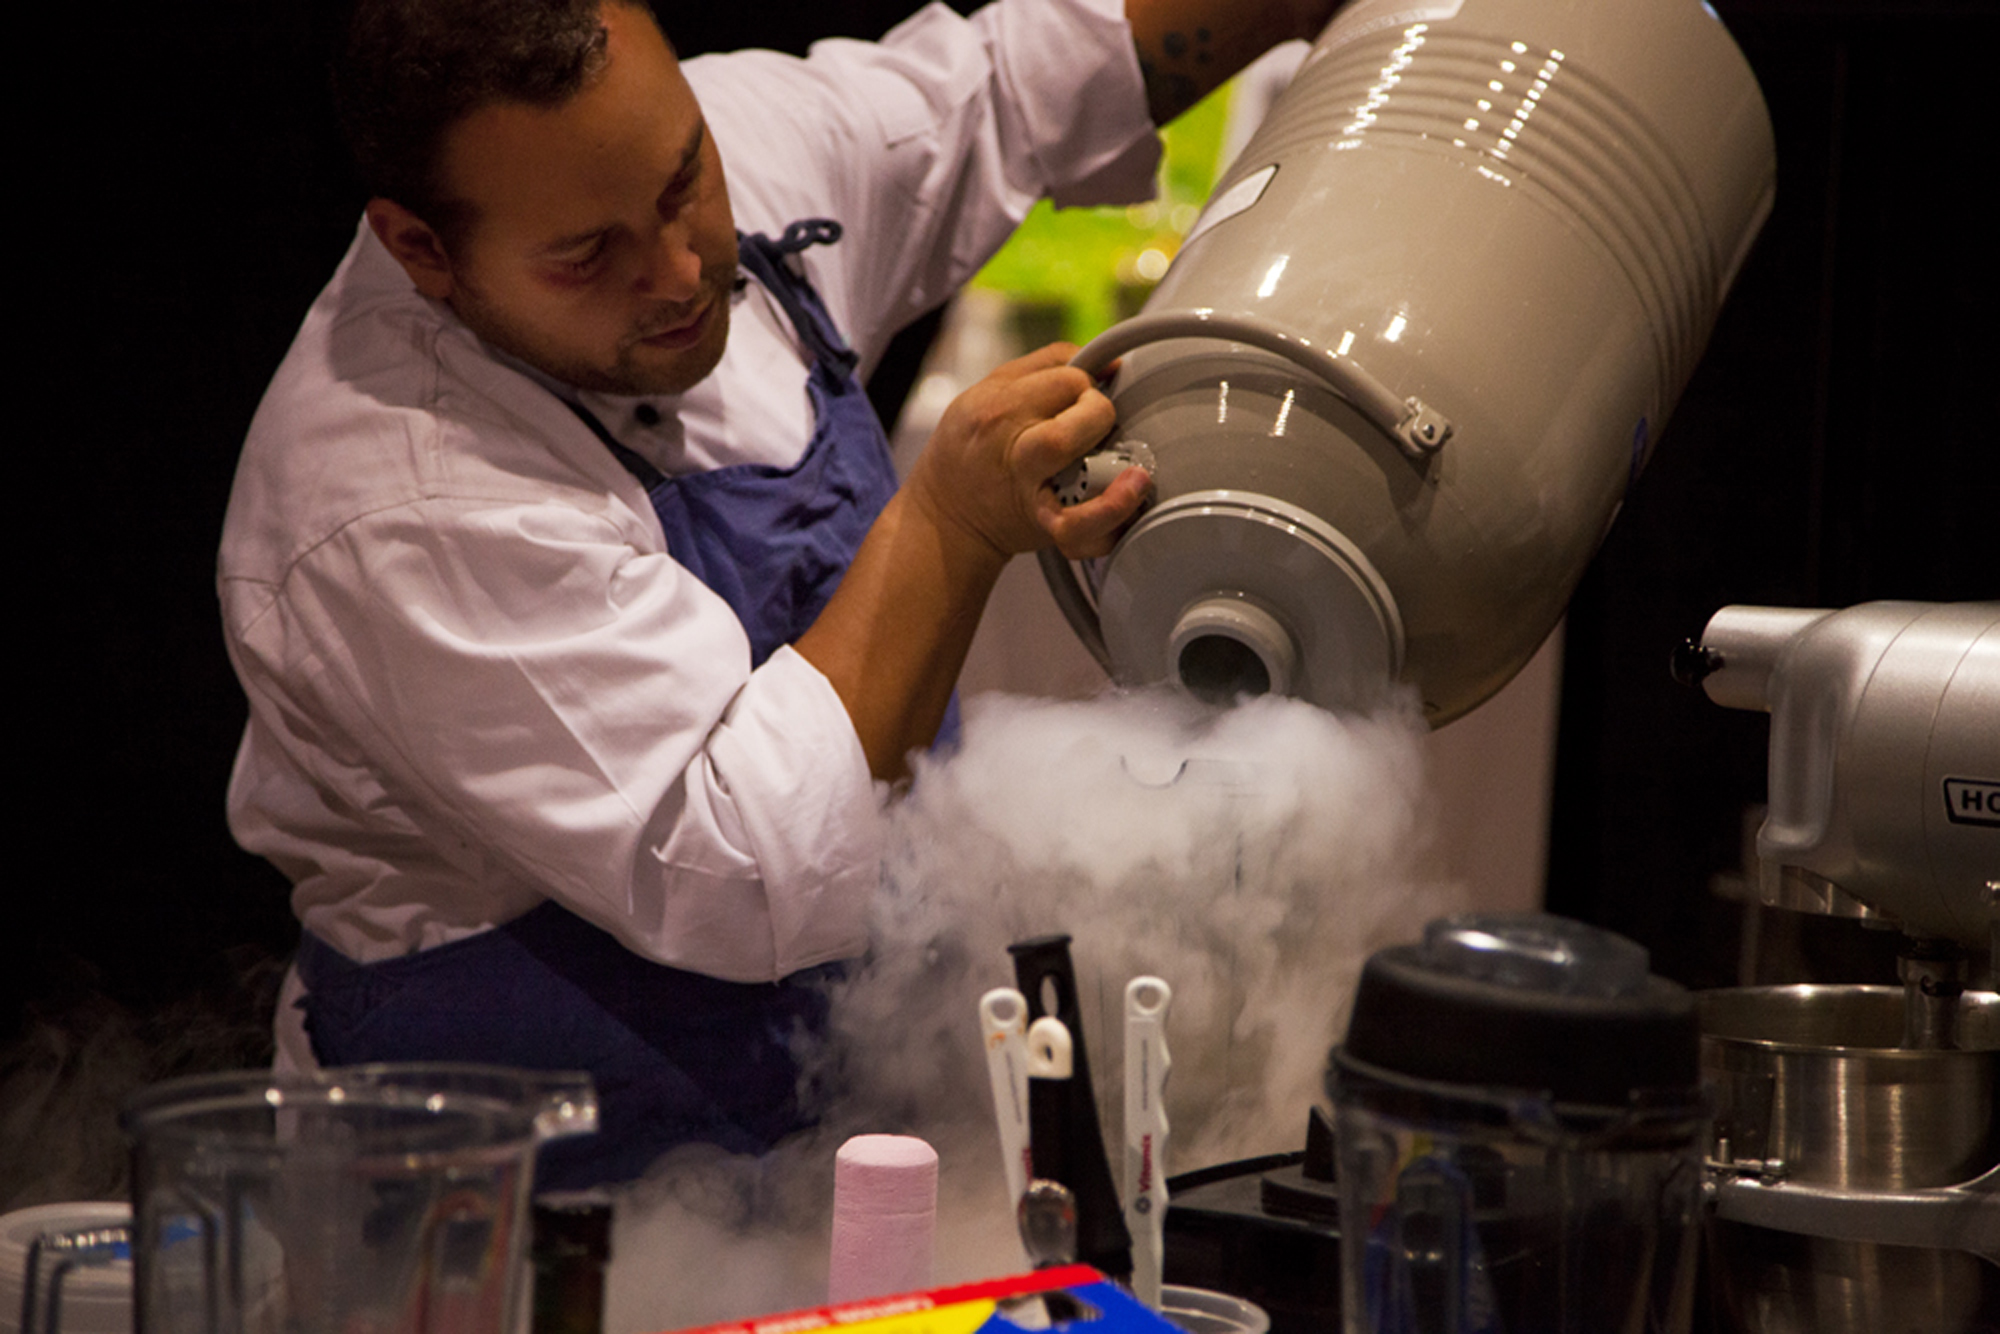 http://www.diningwithoutlaws.com/category/molecular-gastronomy/ | diningwithoutlaws - moleküler gastronomi şefleri